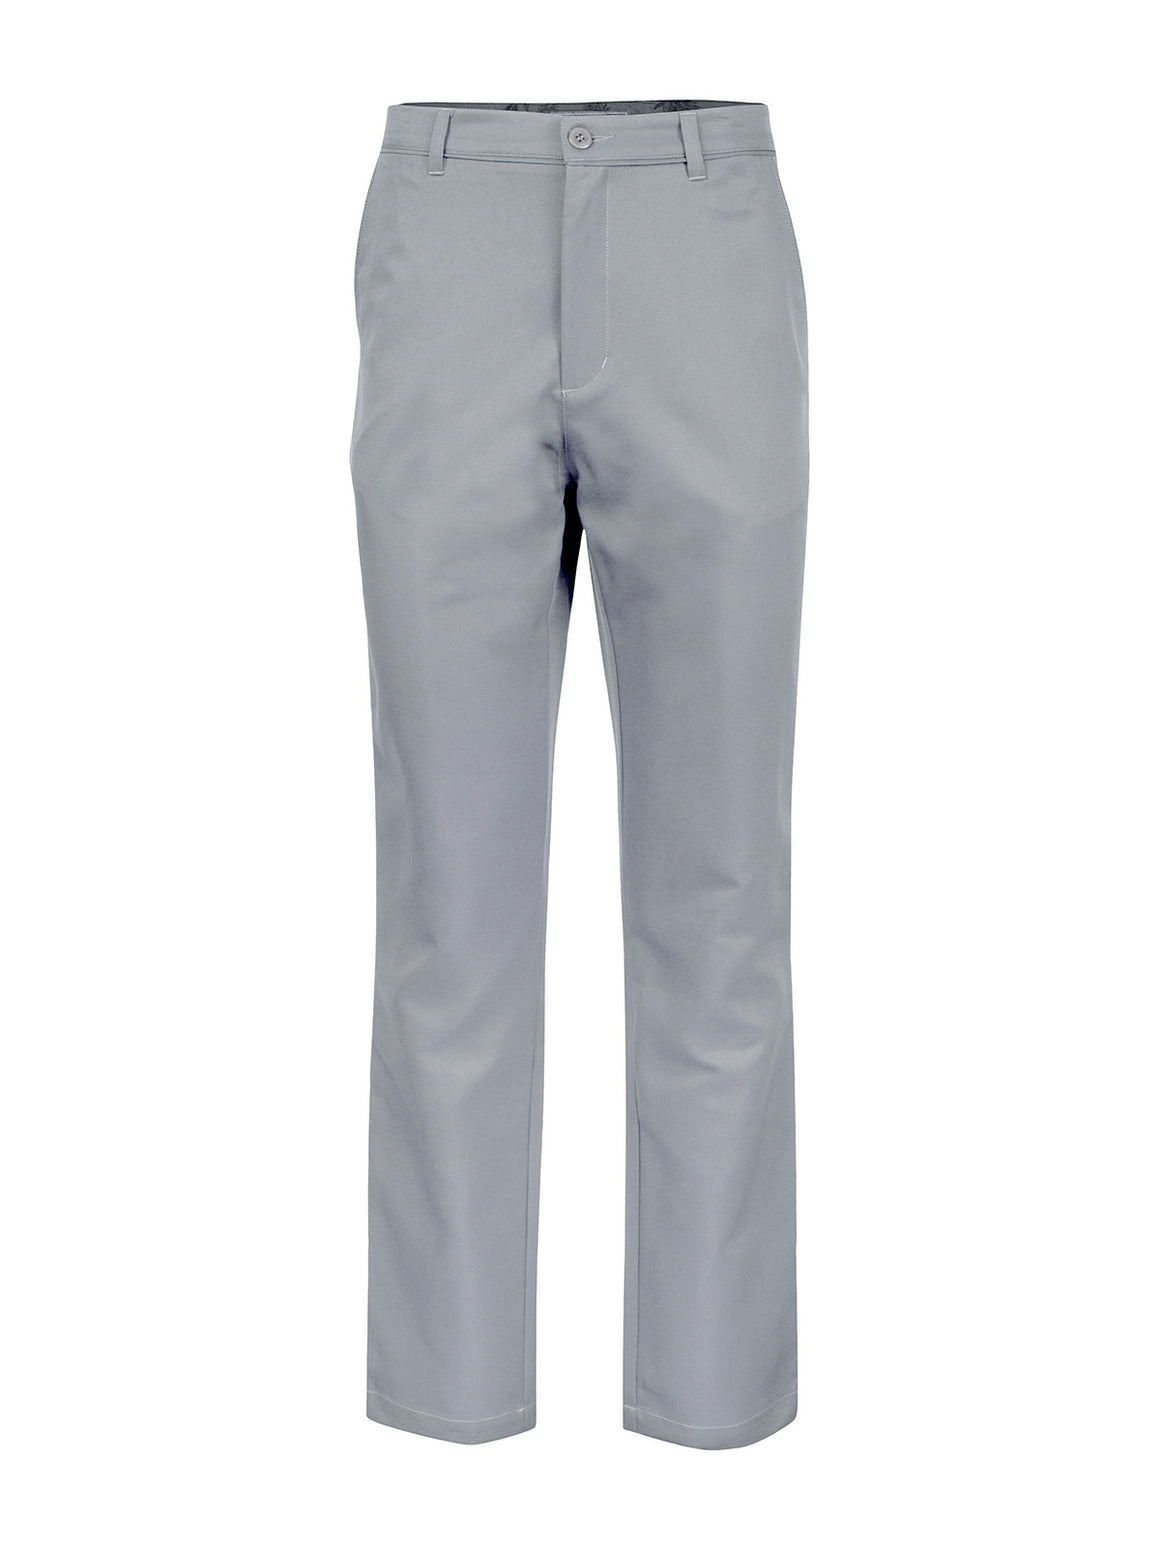 Wayfarer FIT101 Pant - Opal Grey